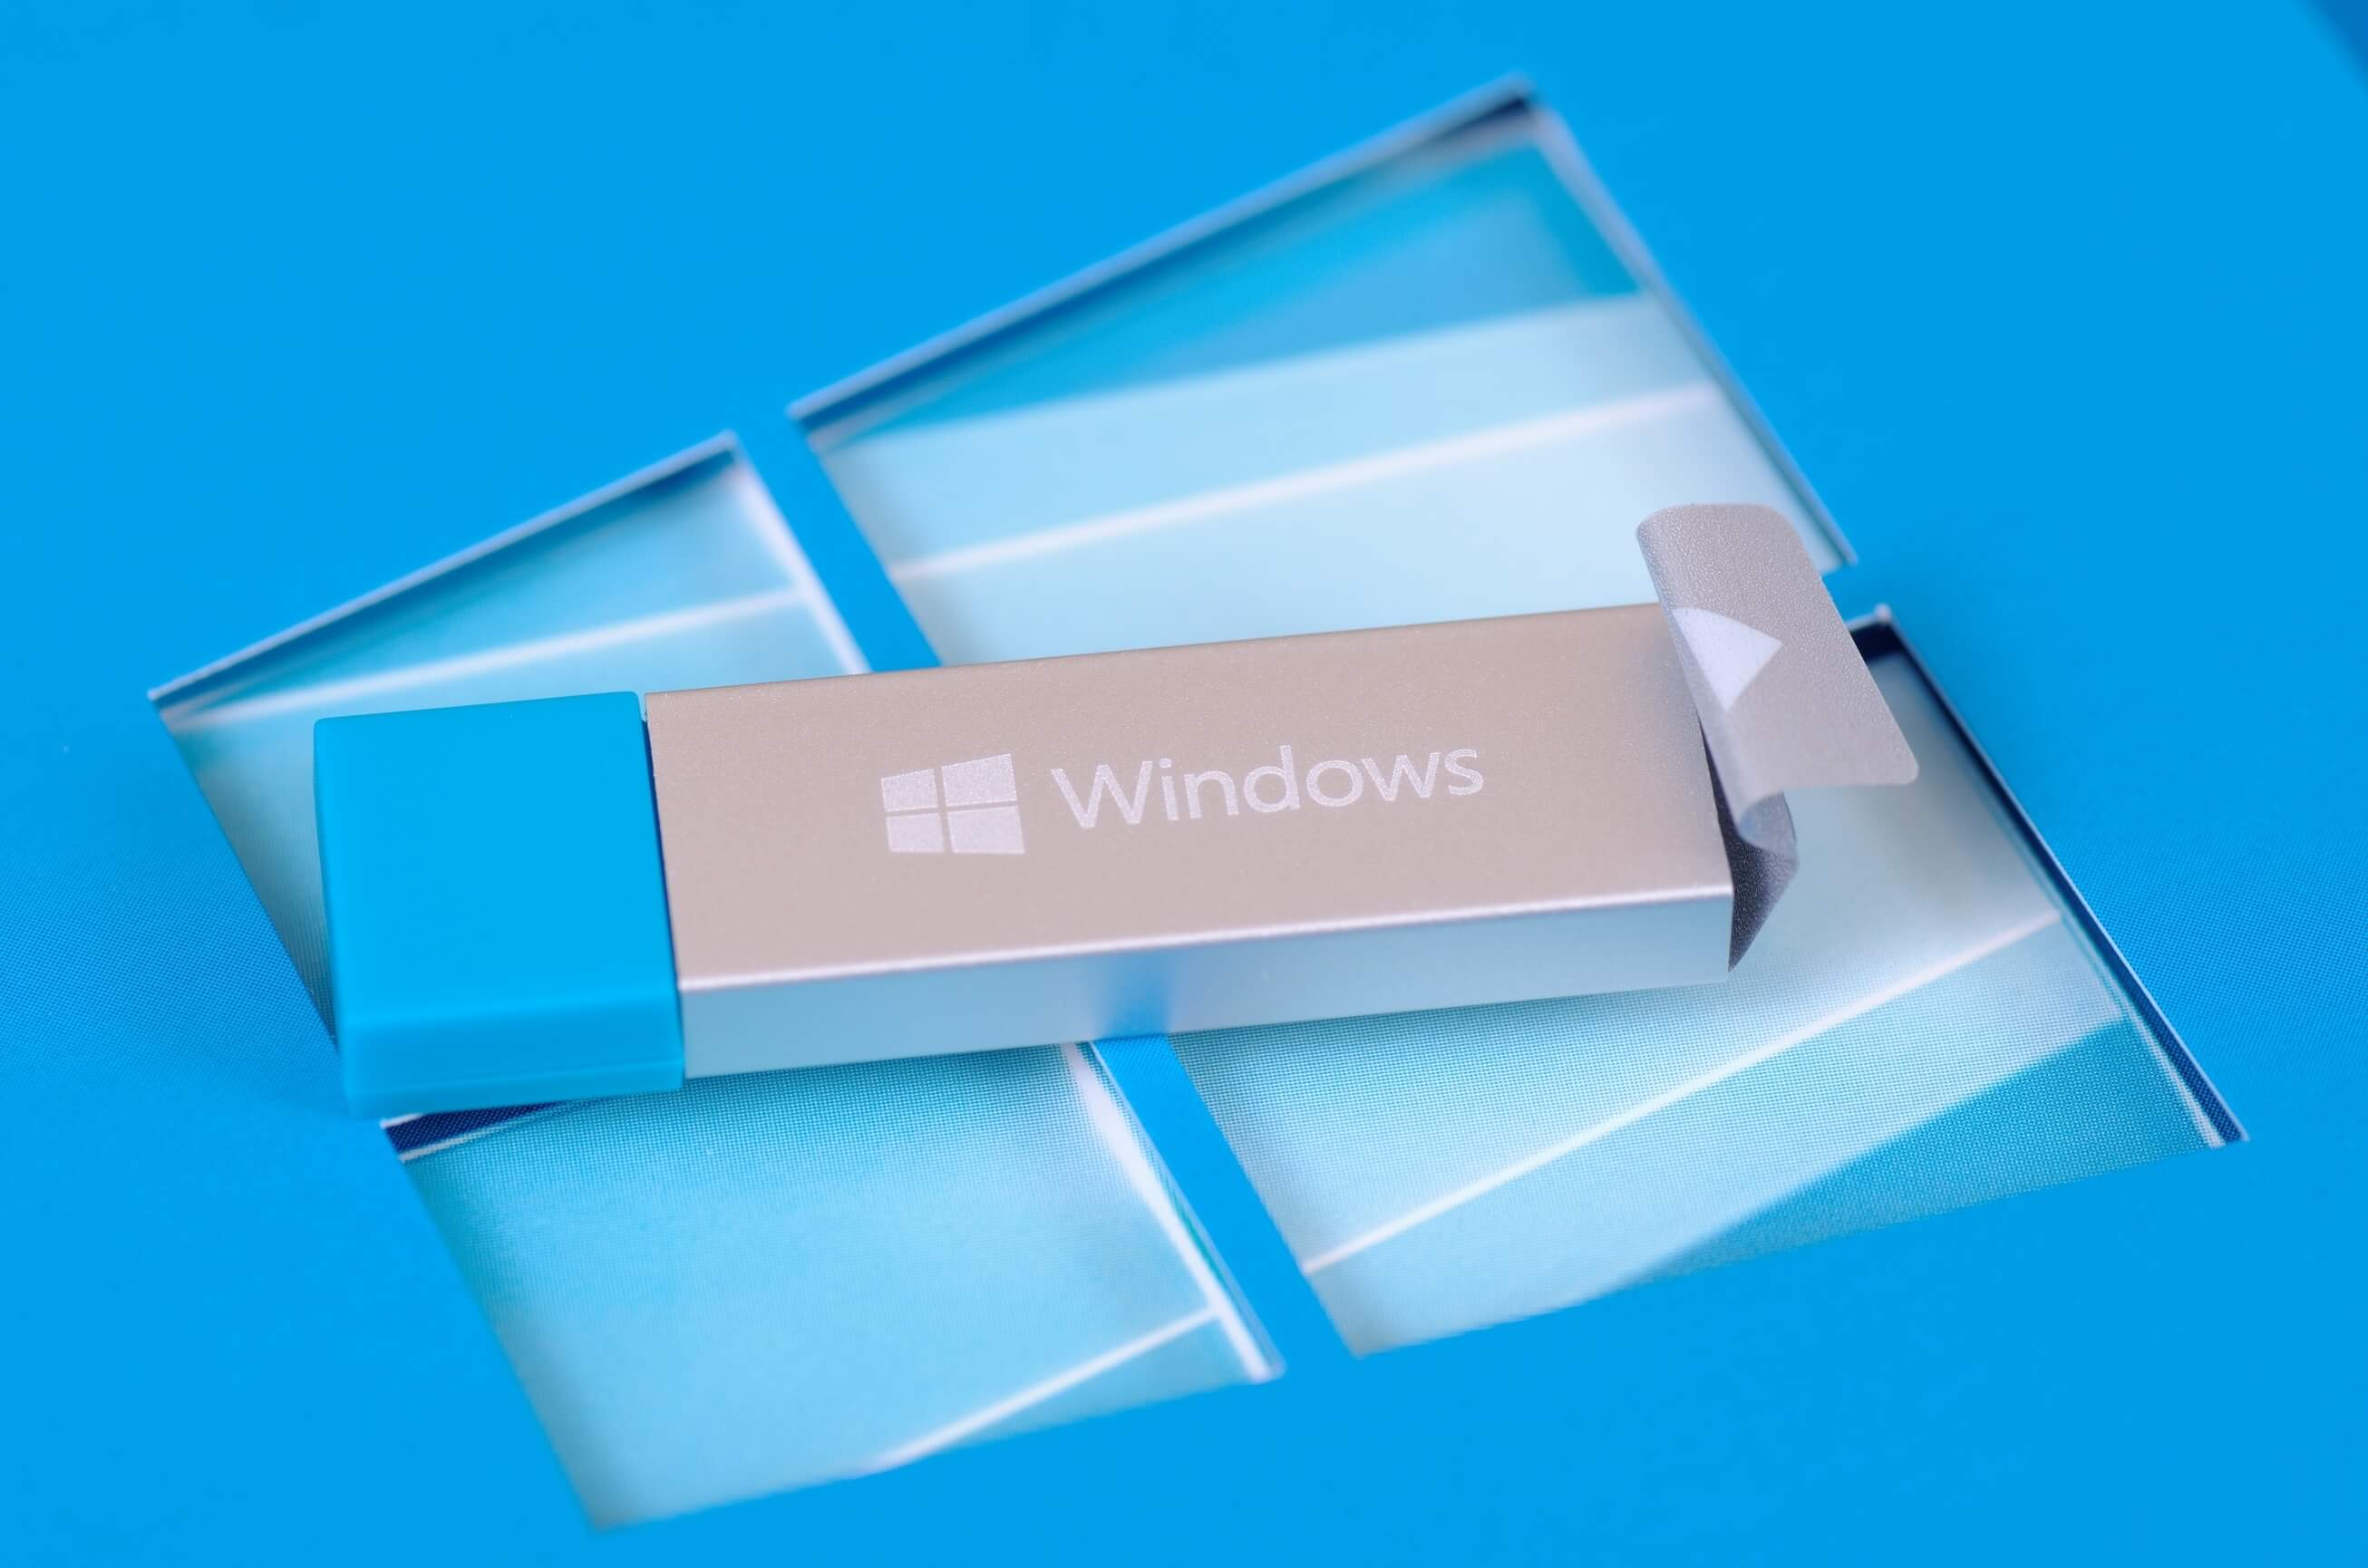 How to Install and Run Windows 10 from a USB Drive | Maocular Tech